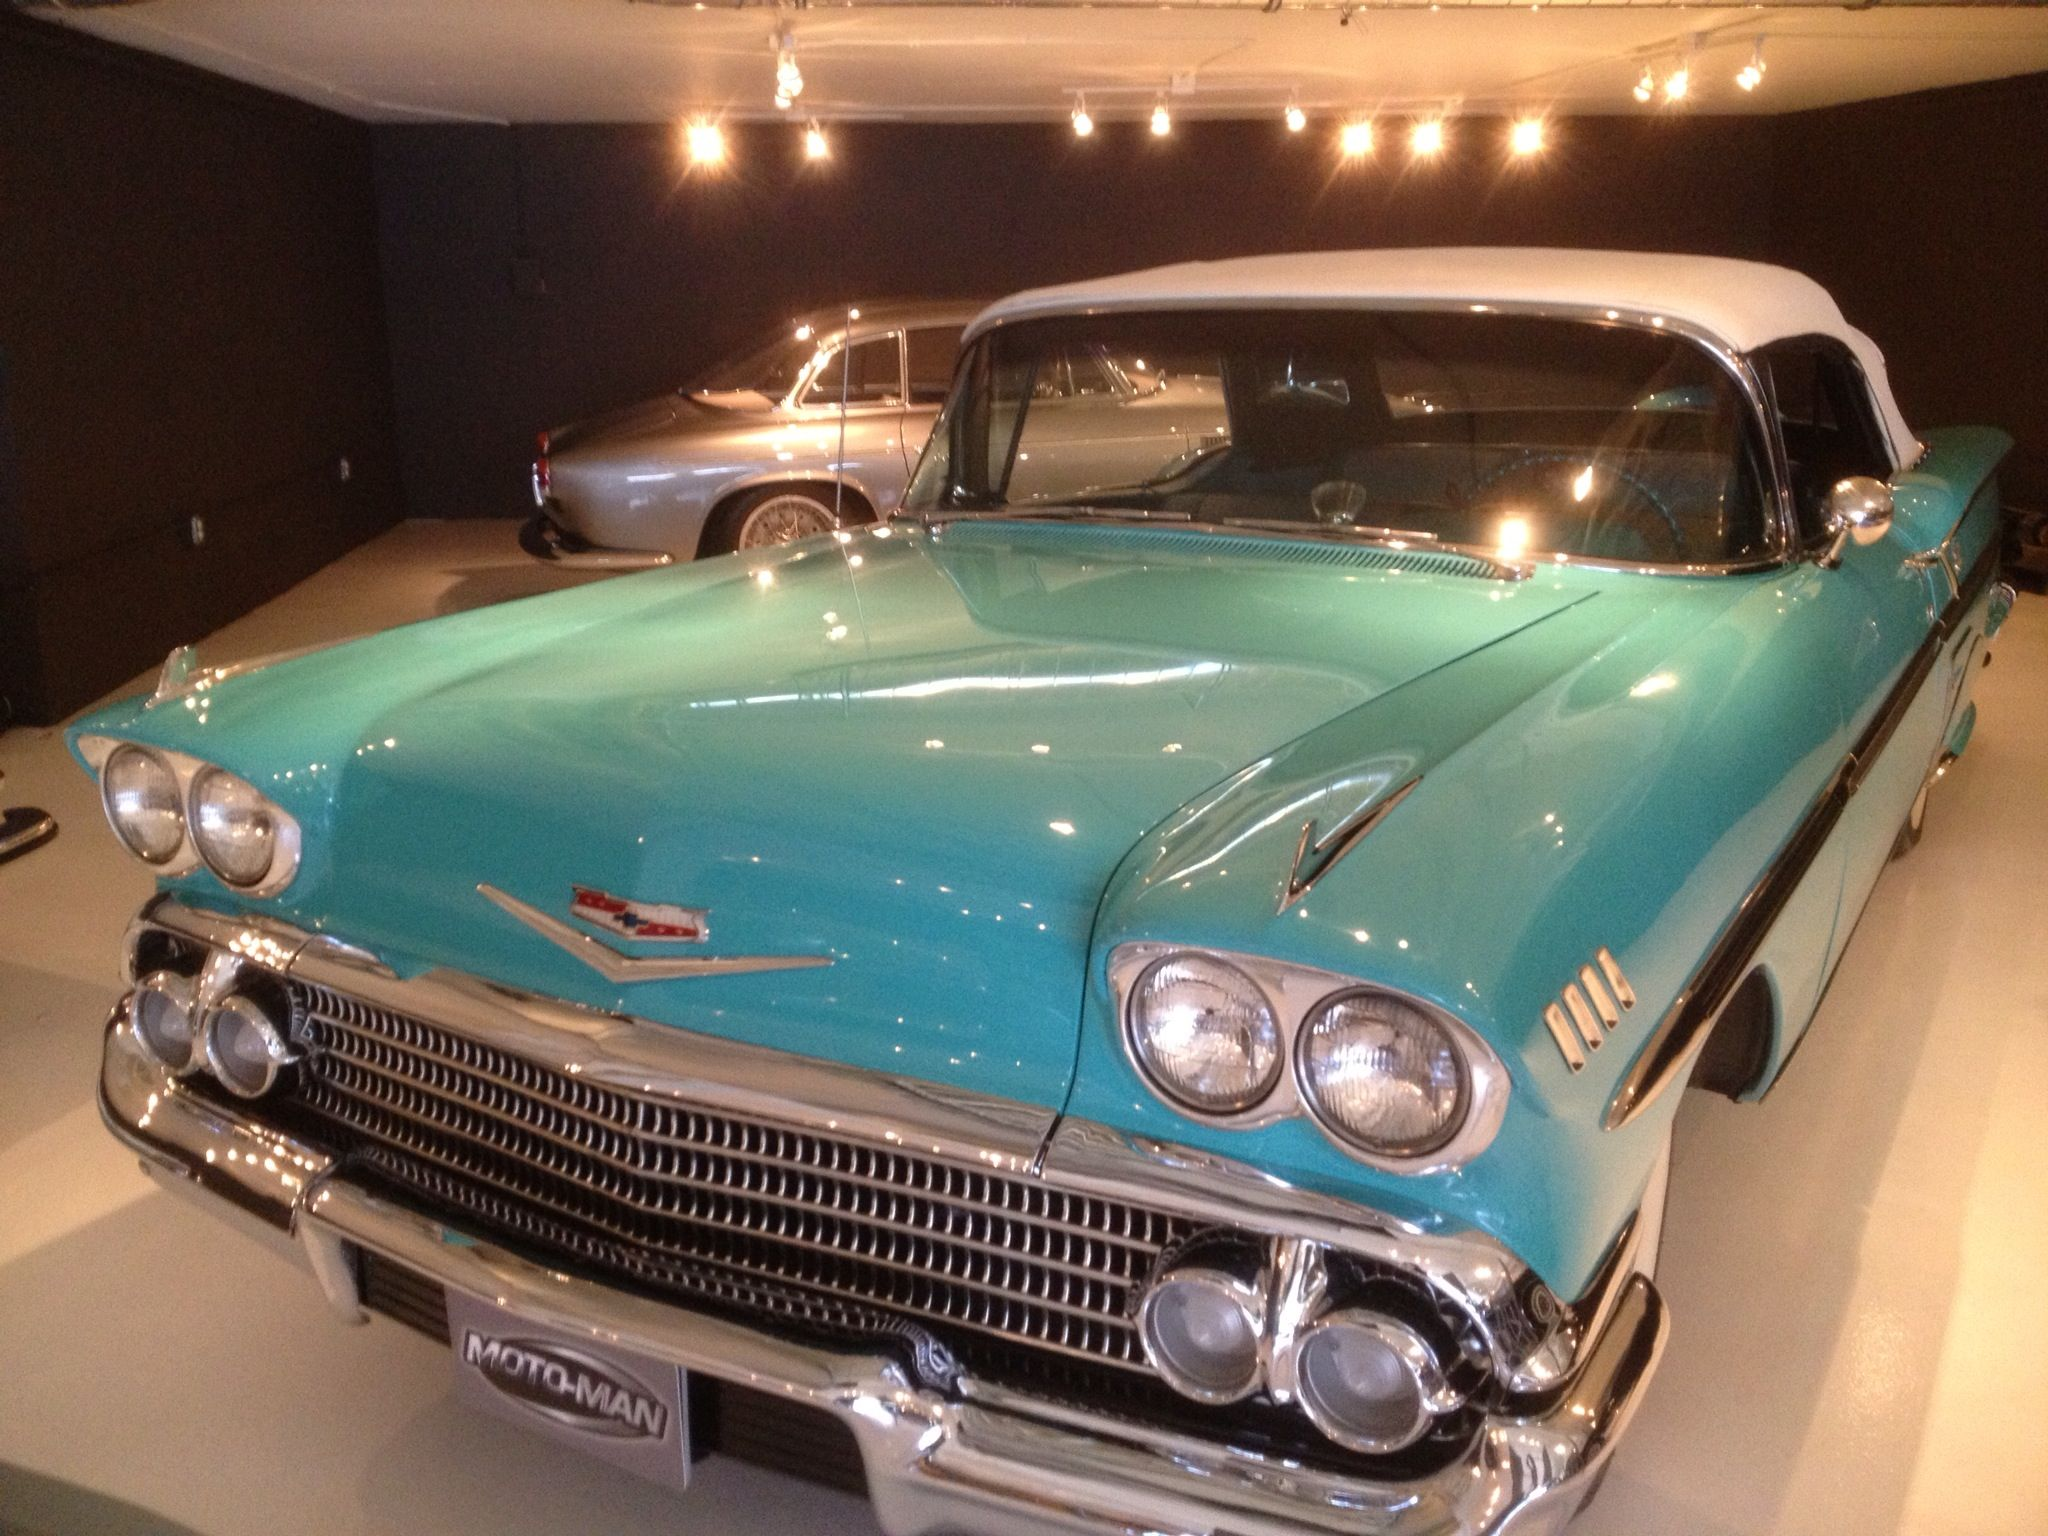 The 1953 At Chevrolet Impala Made A Guest Appearance At The 2014